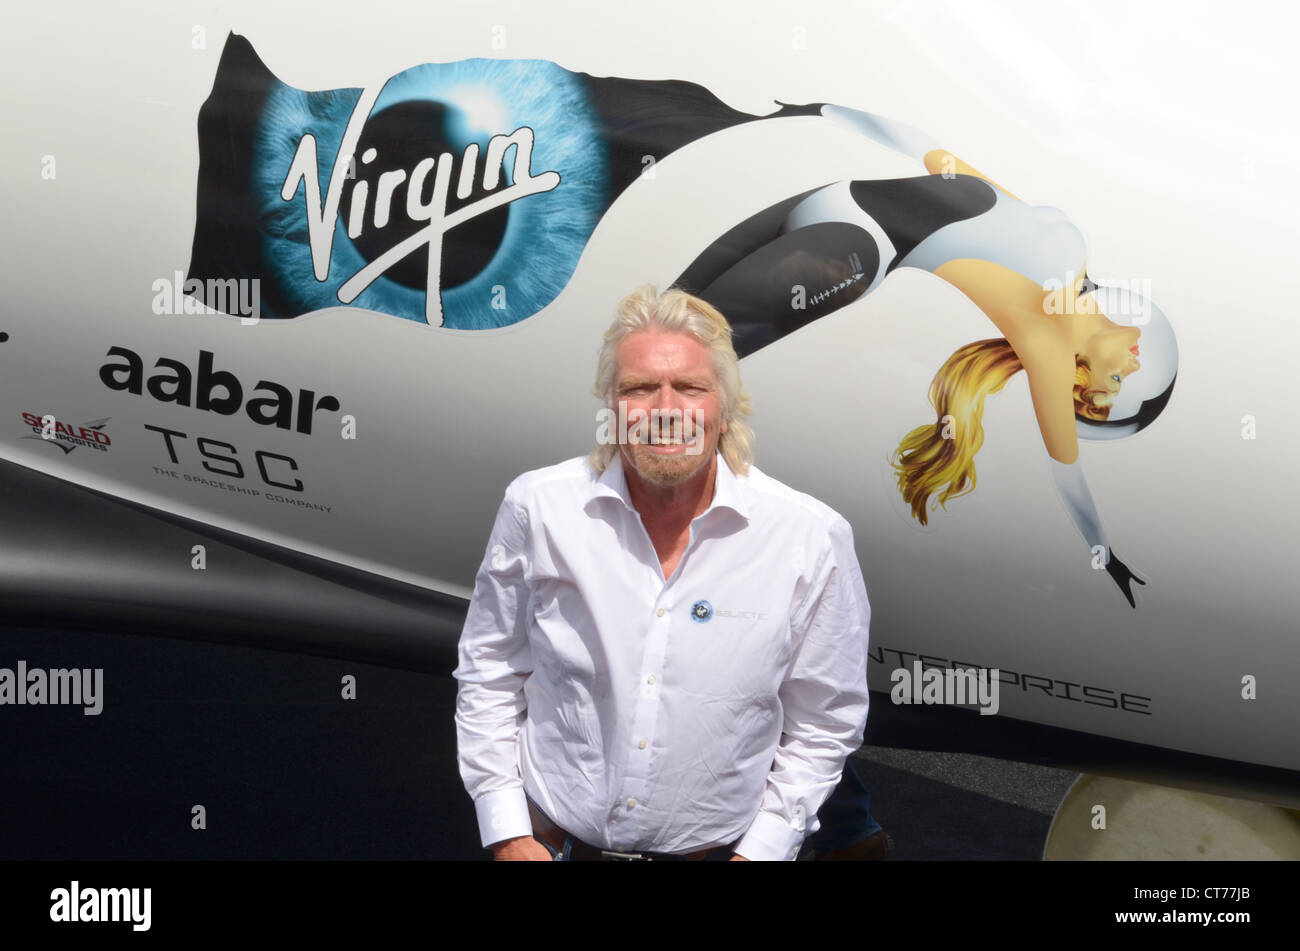 Virgin galactic space stock photos virgin galactic space stock sir richard branson founder of virgin galactic in front of a replica of spaceshiptwo unveiled buycottarizona